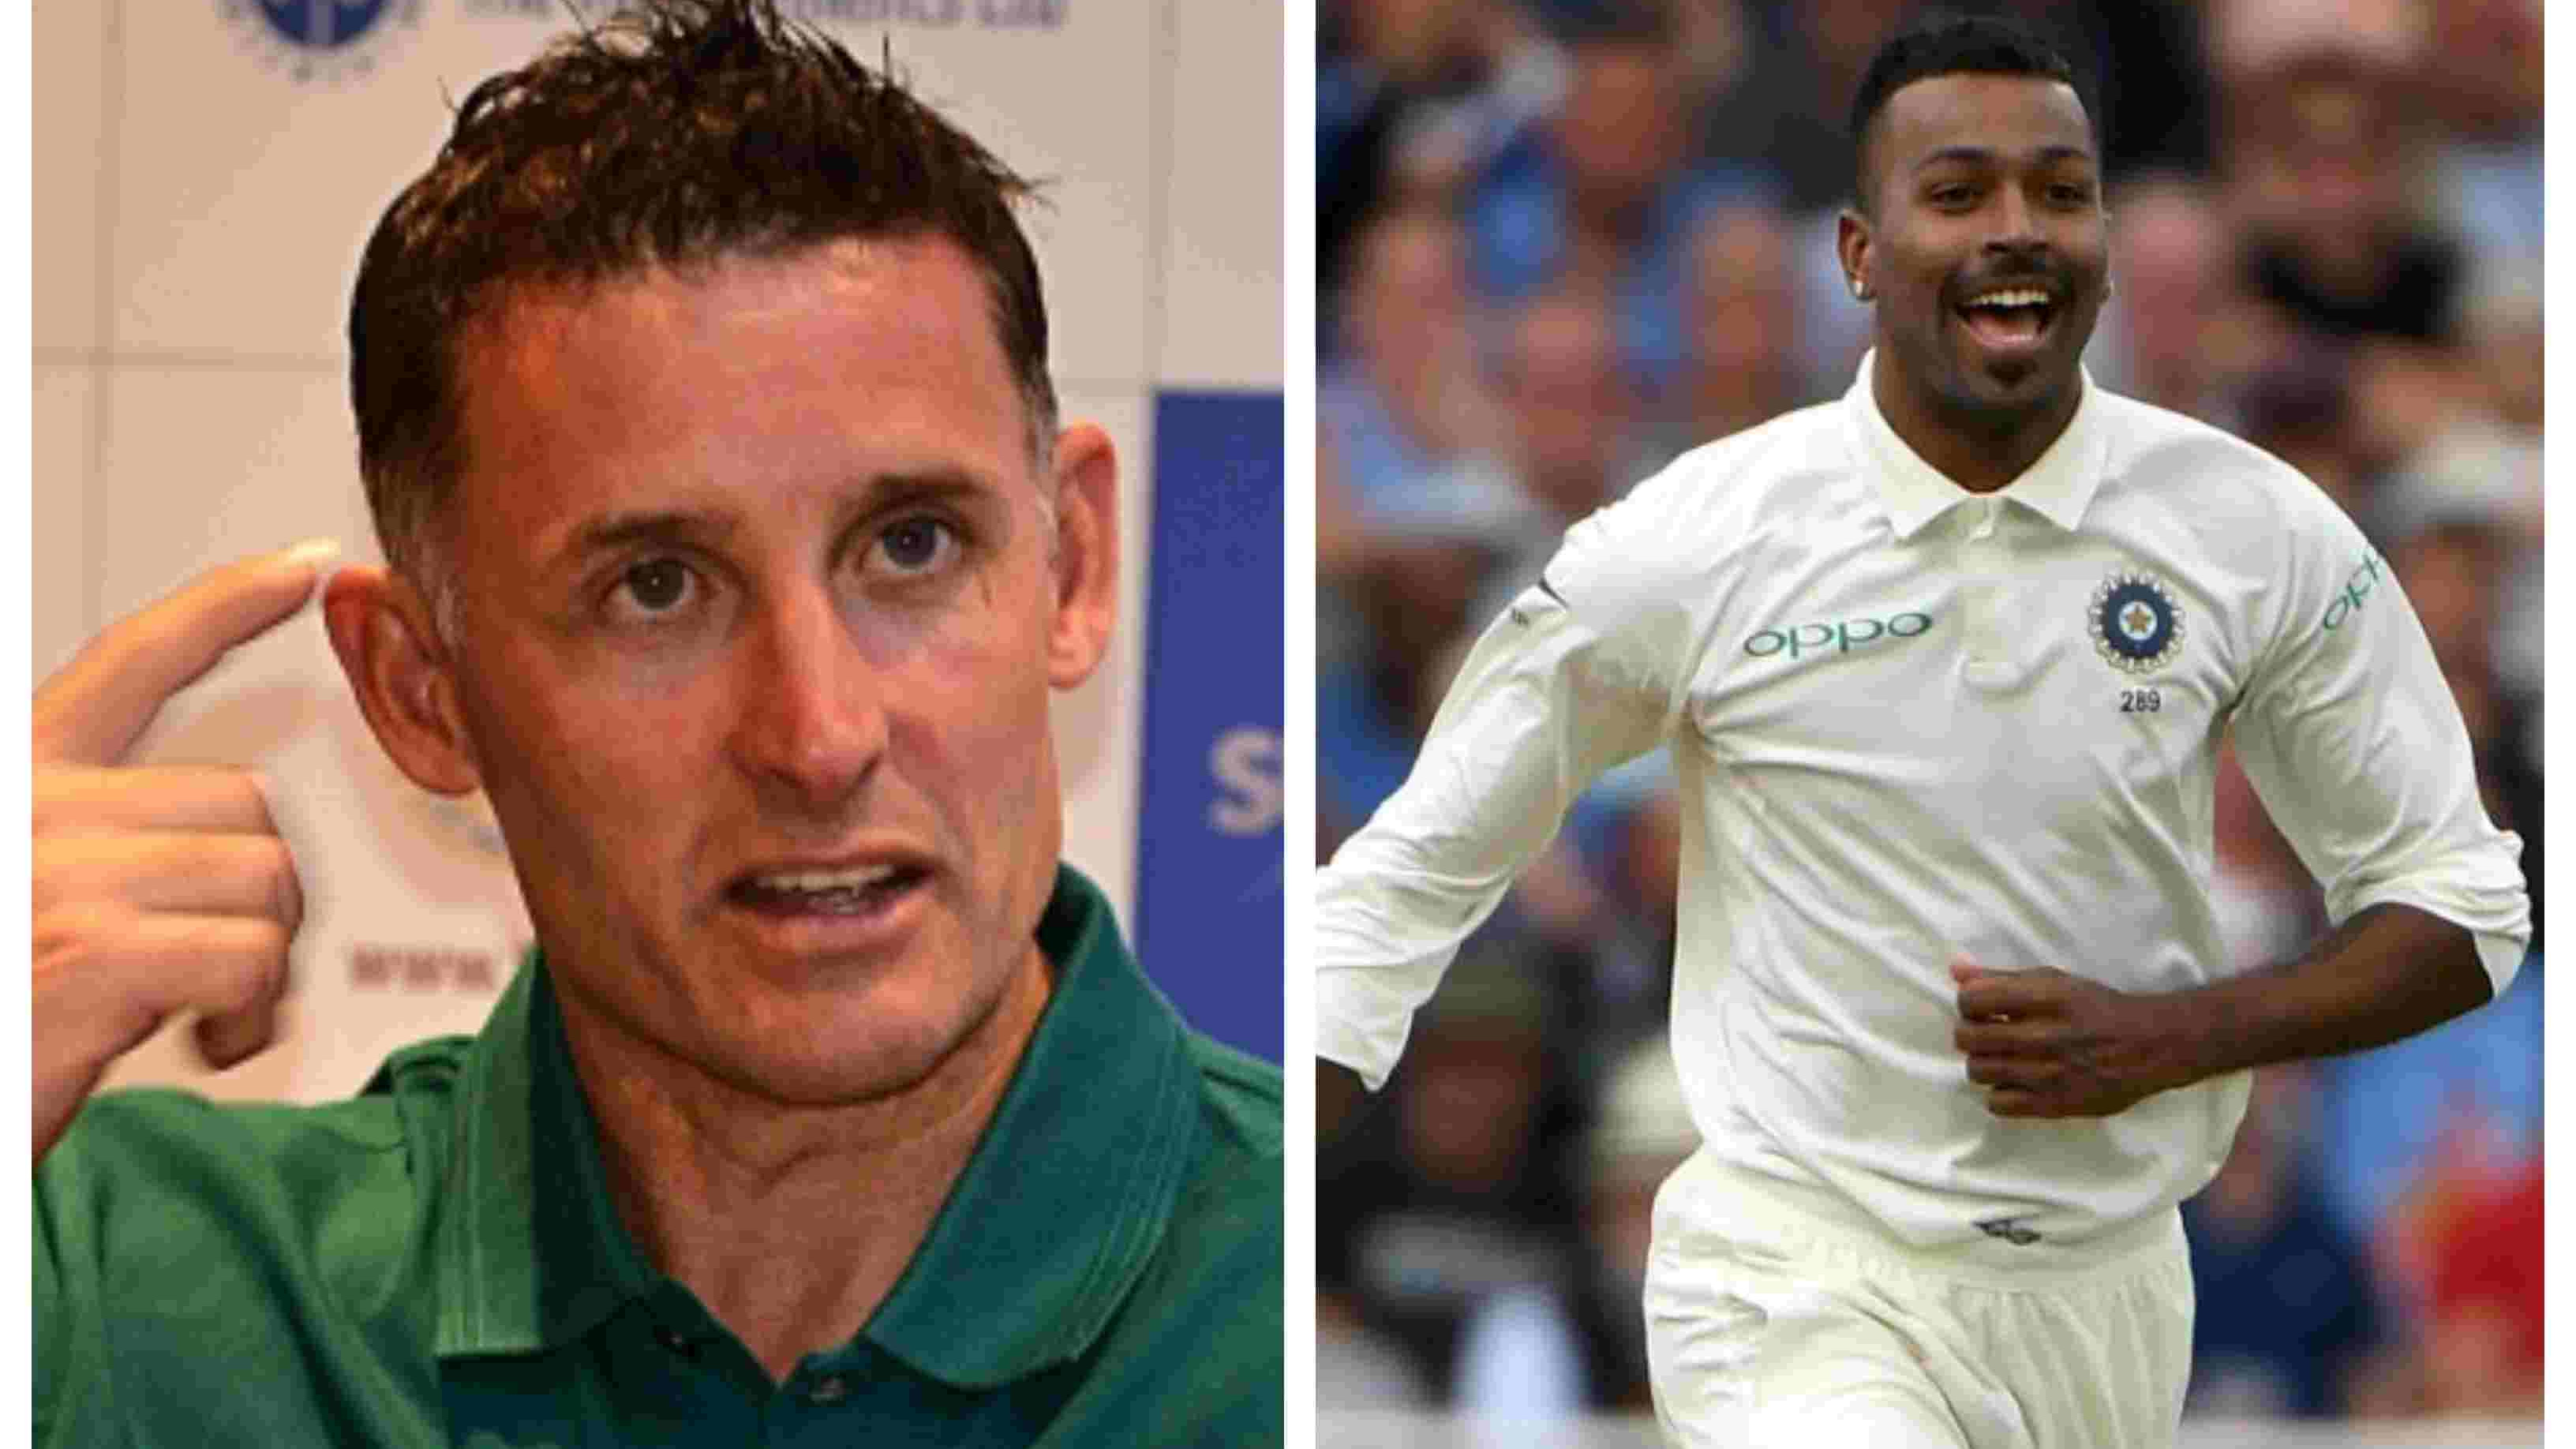 AUS v IND 2018-19: Team India will miss the services of Hardik Pandya in Australia, reckons Mike Hussey